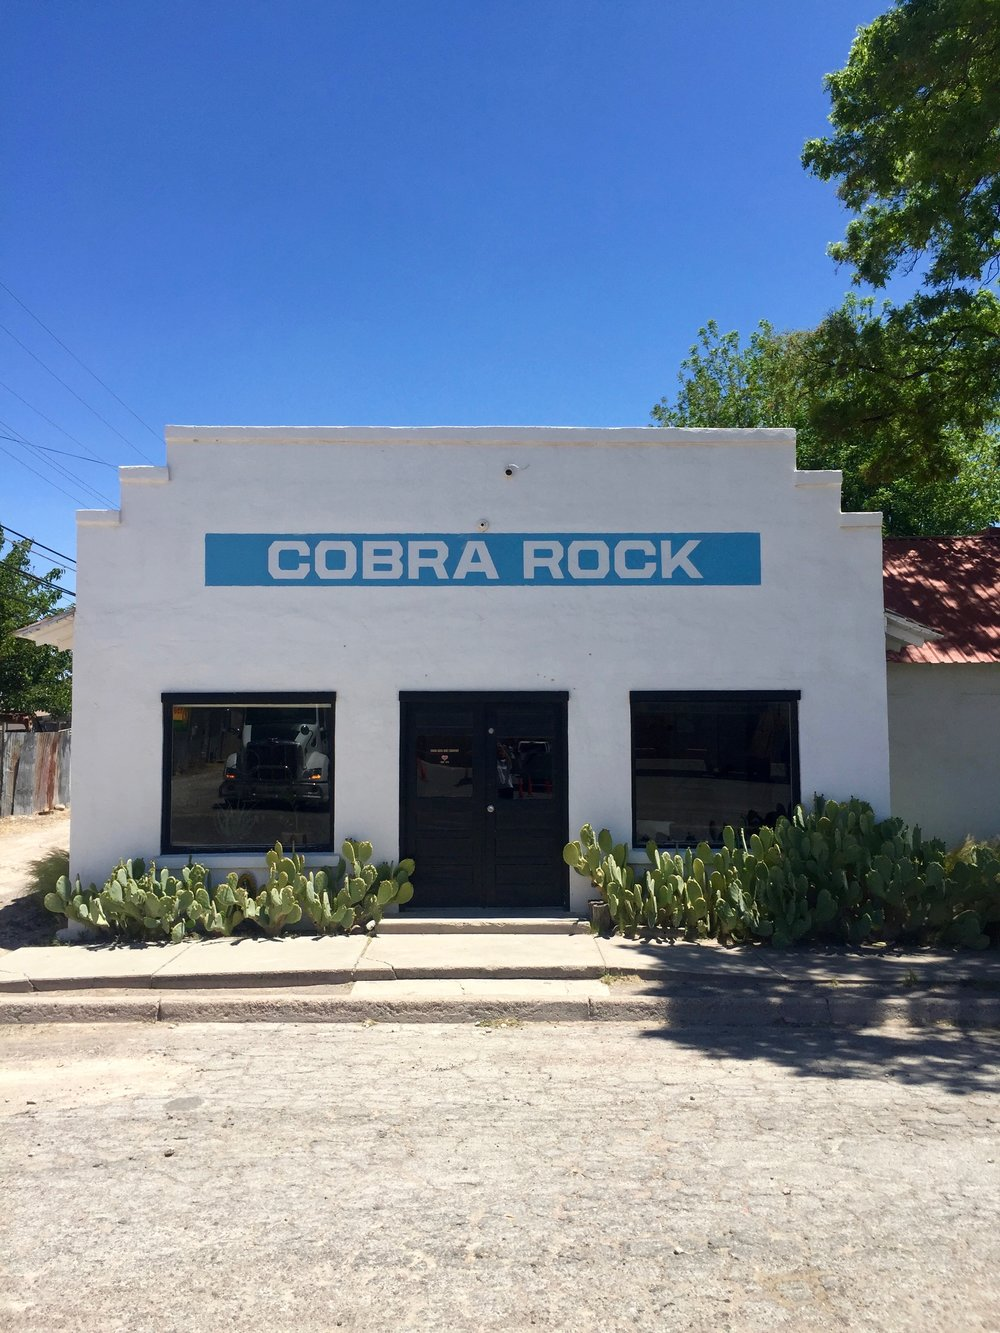 leather good at Cobra Rock, Marfa, Texas - 3 Days*